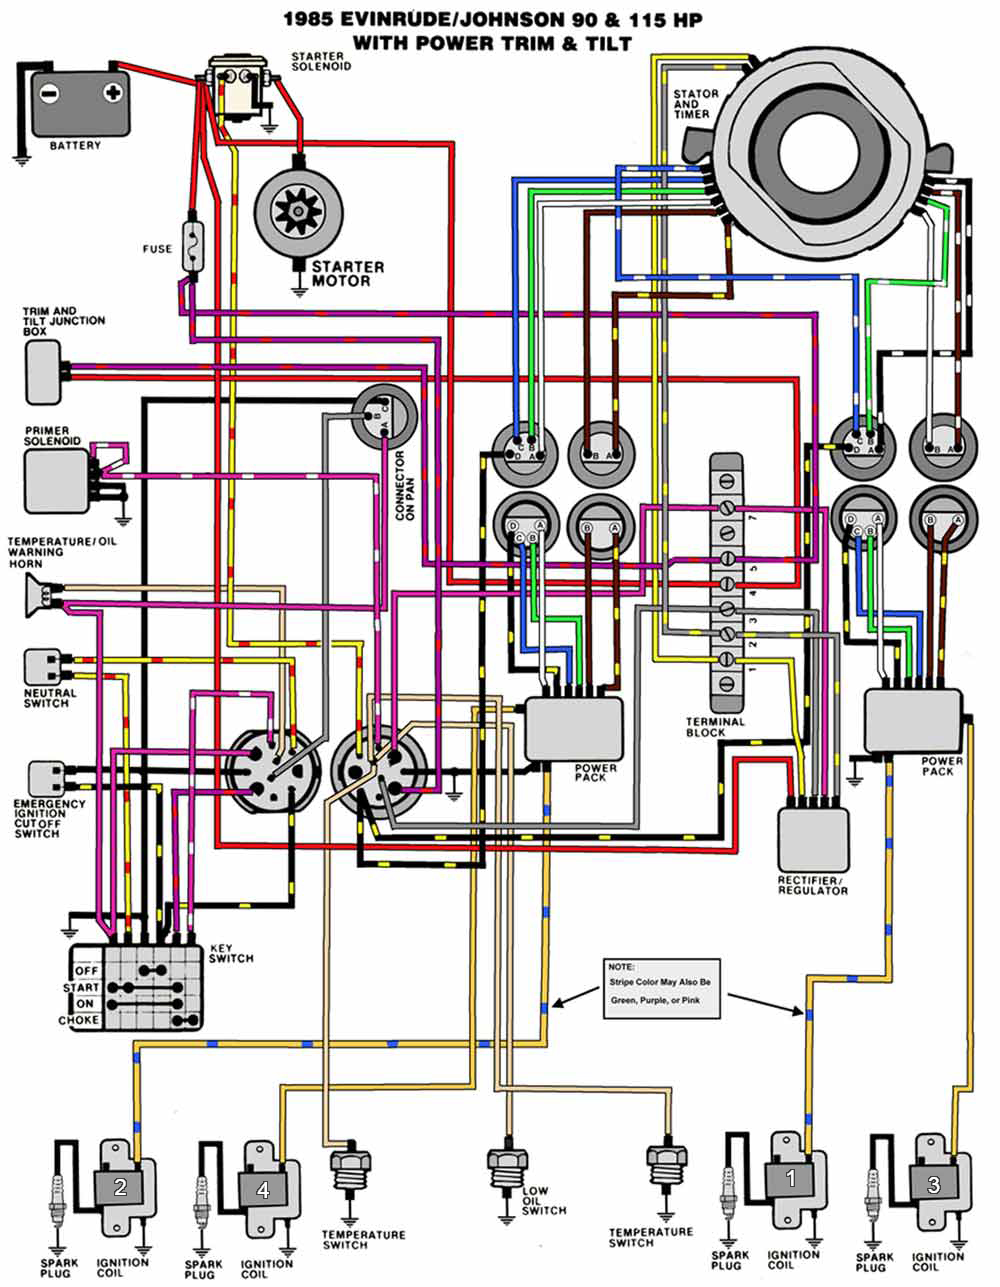 medium resolution of mercury 50 hp wiring diagram wiring libraryjohnson outboard motor wiring diagram motorwallpapers org rh motorwallpapers org